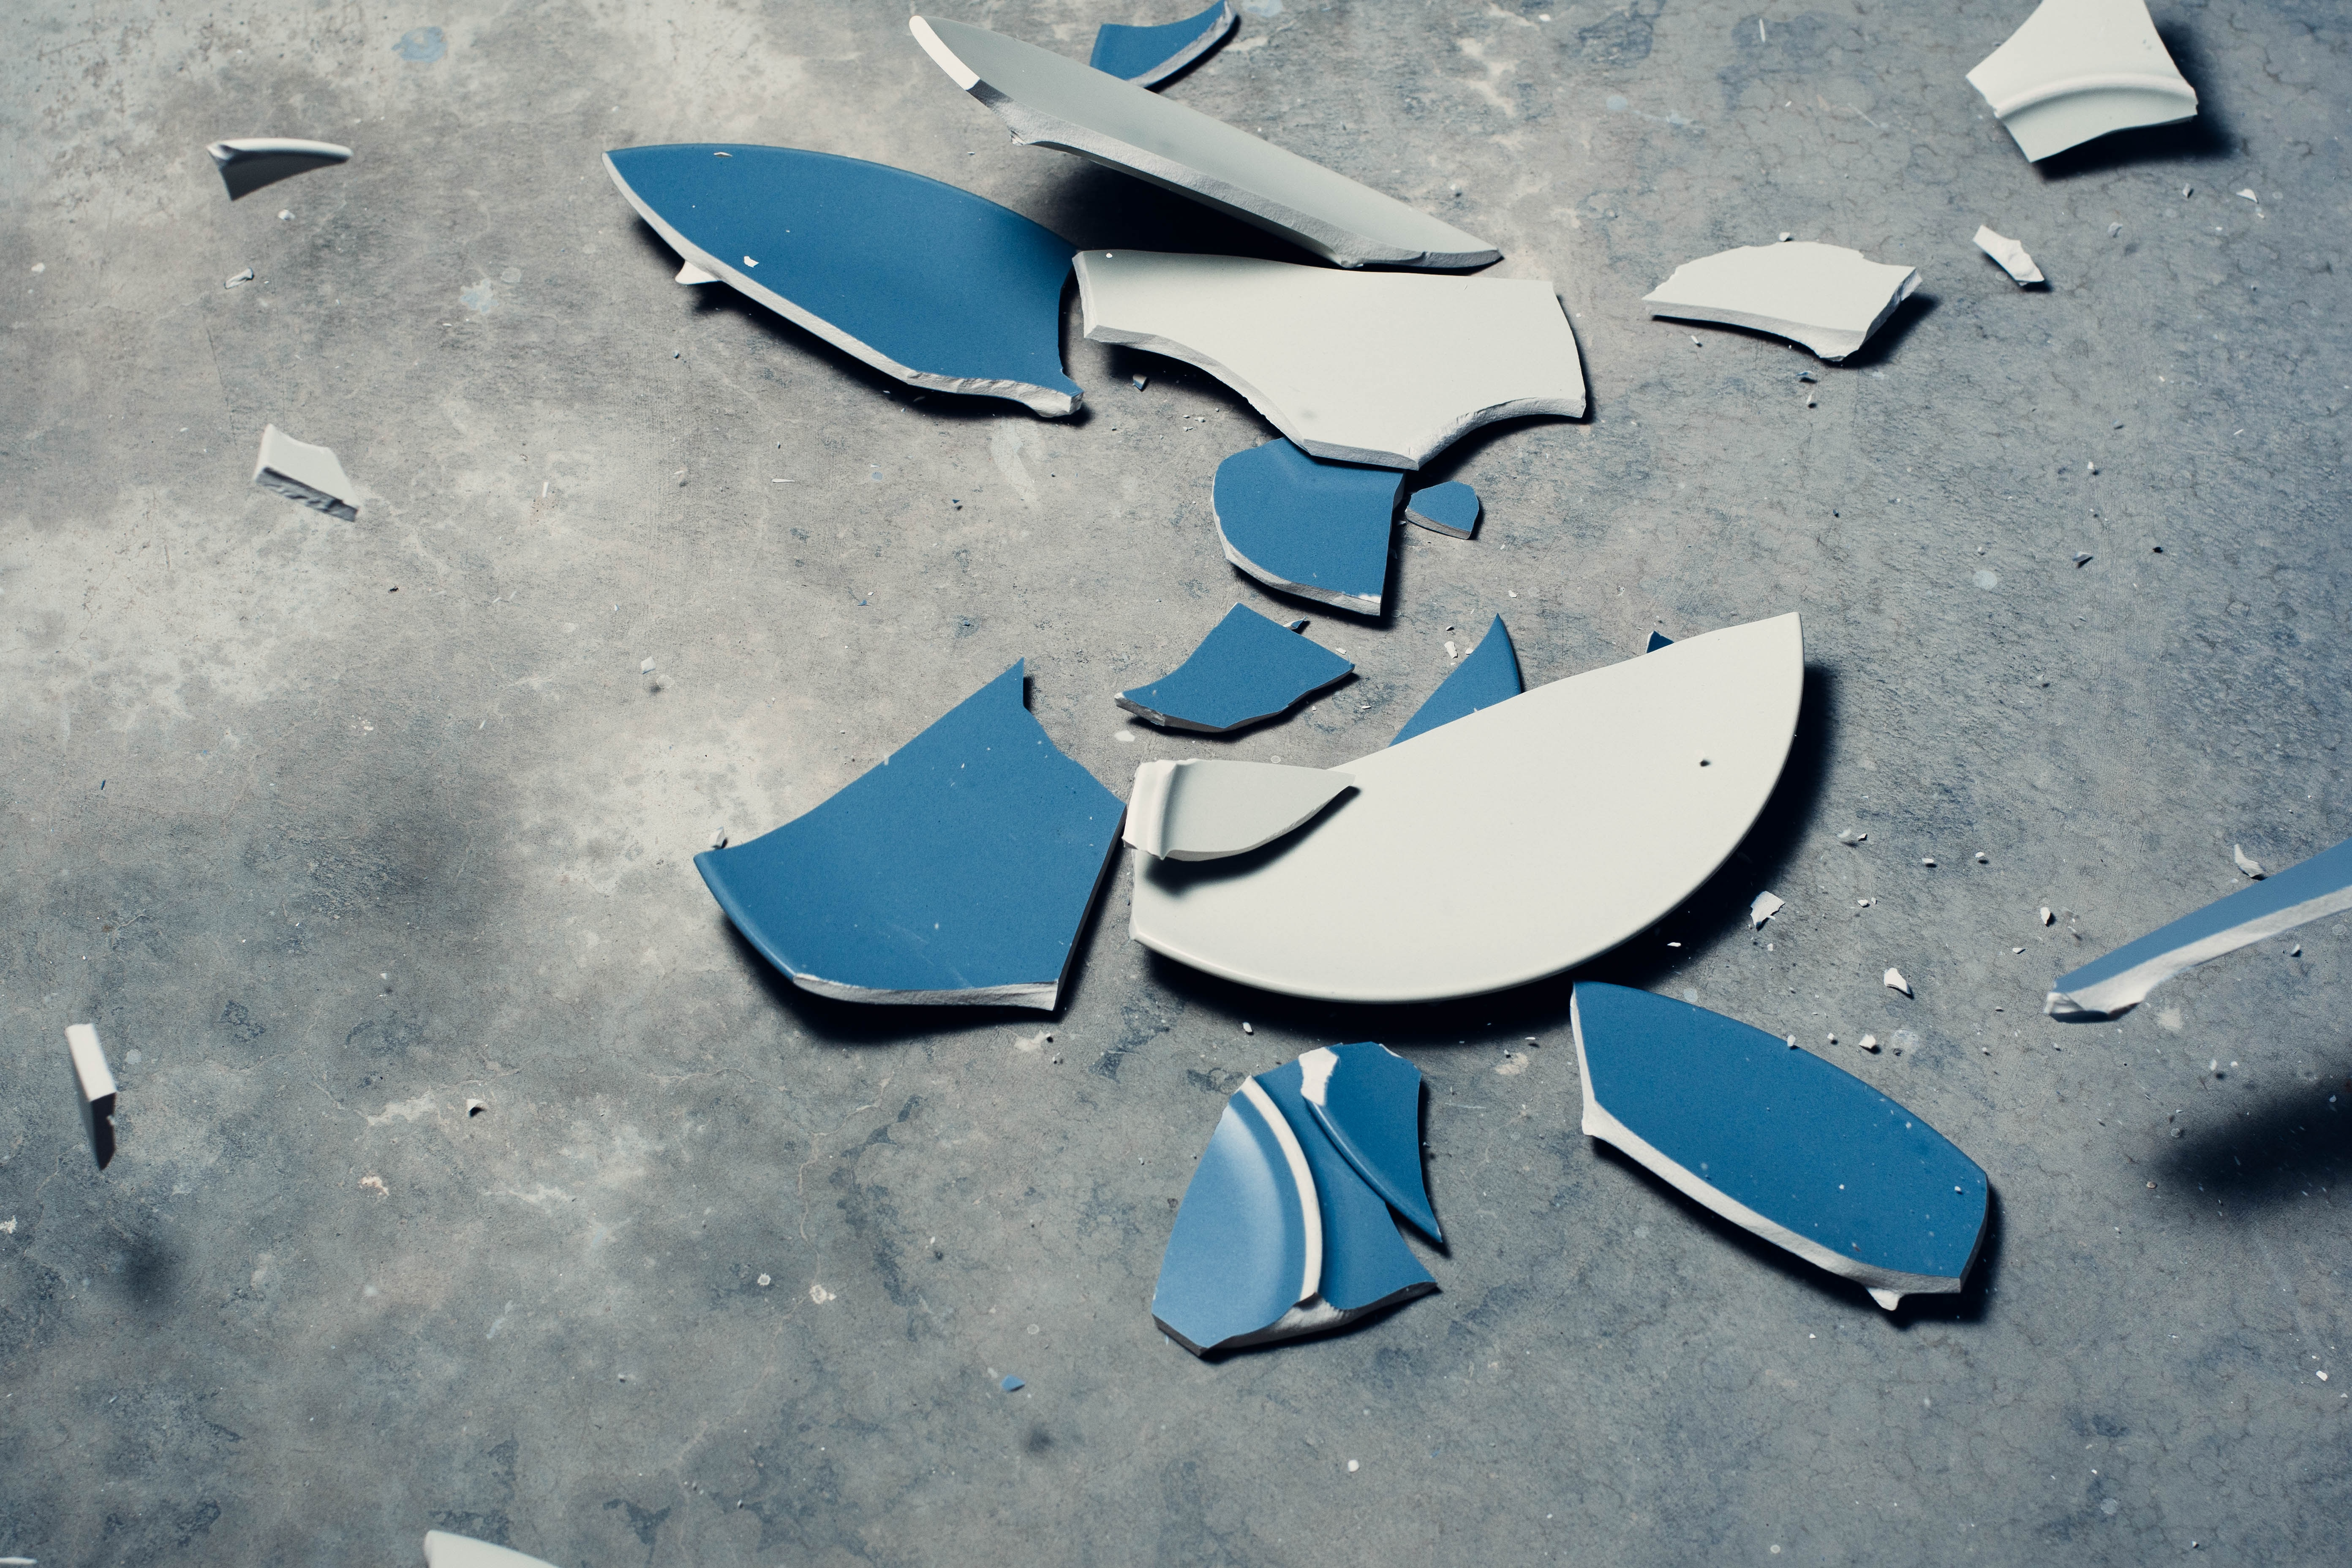 Shattered two plates and froze them